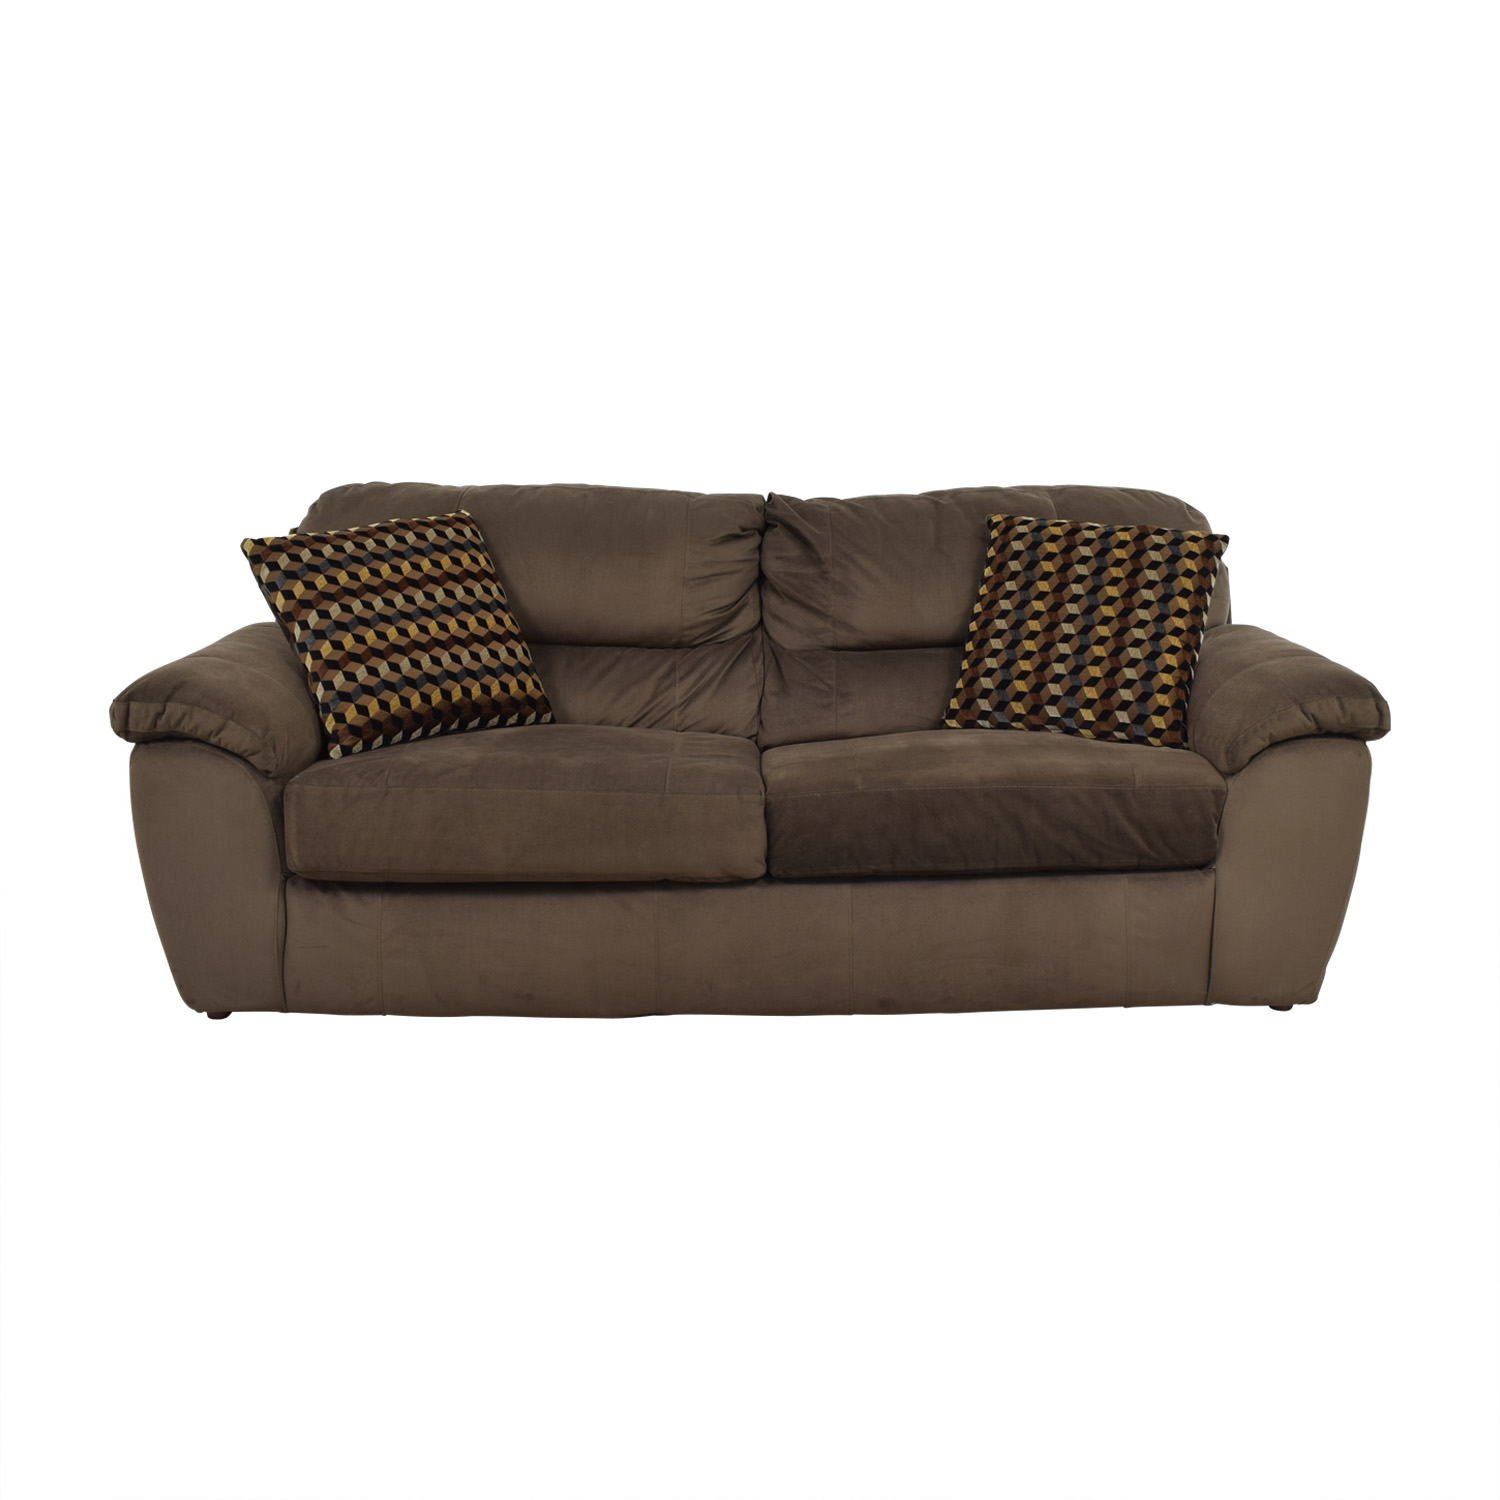 Bobs furniture sofa bed bobs futon roselawnlutheran thesofa Loveseat sofa bed